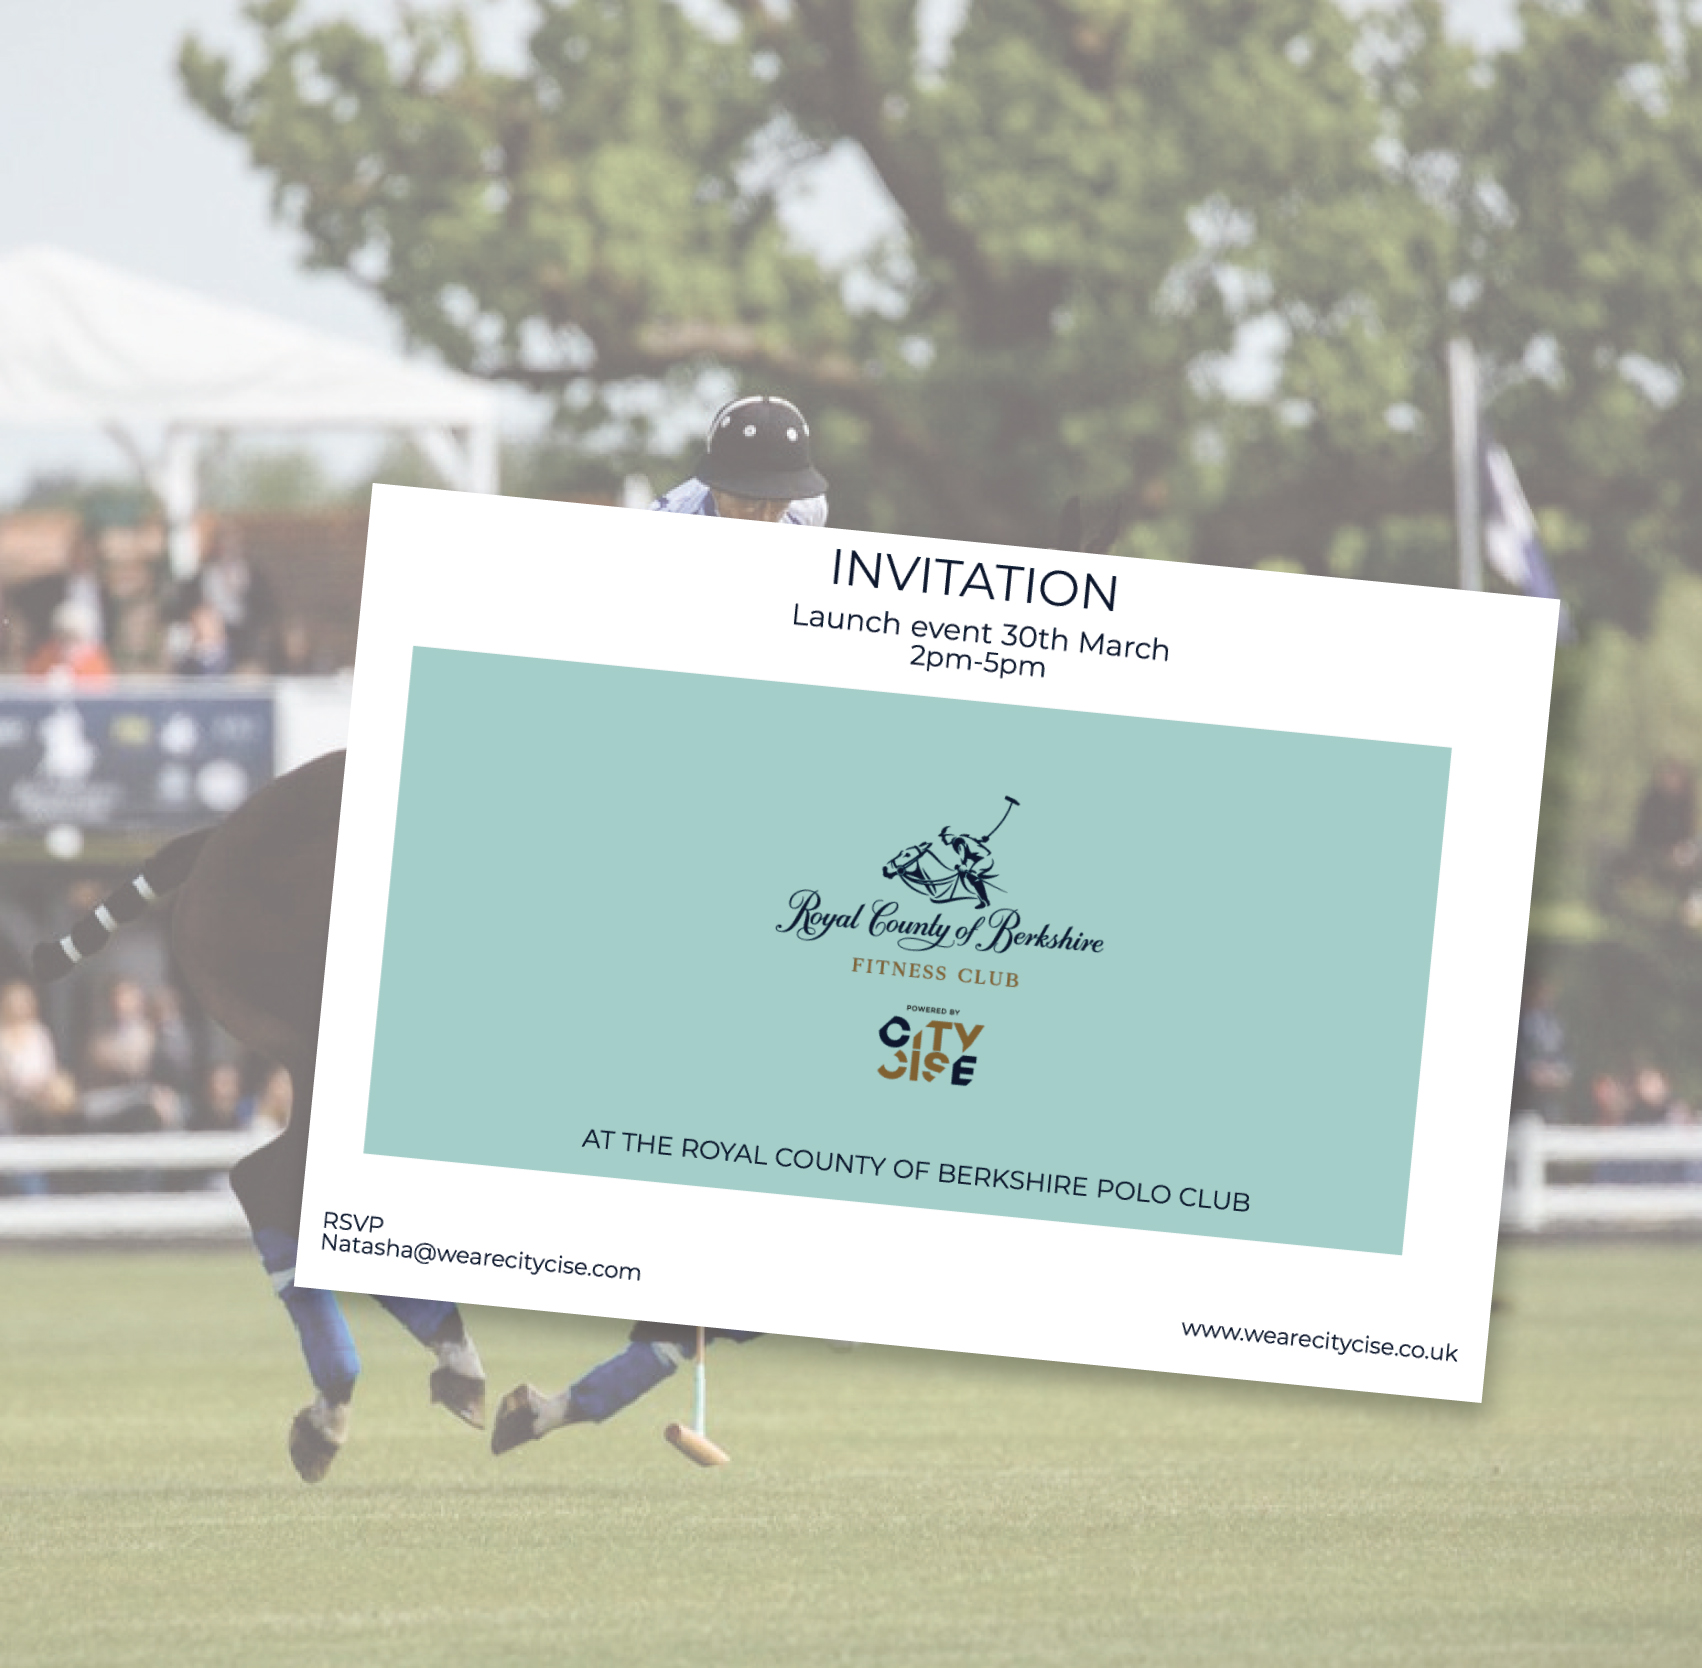 An invitation to the launch event for Royal County of Berkshire fitness club powered by Citycise